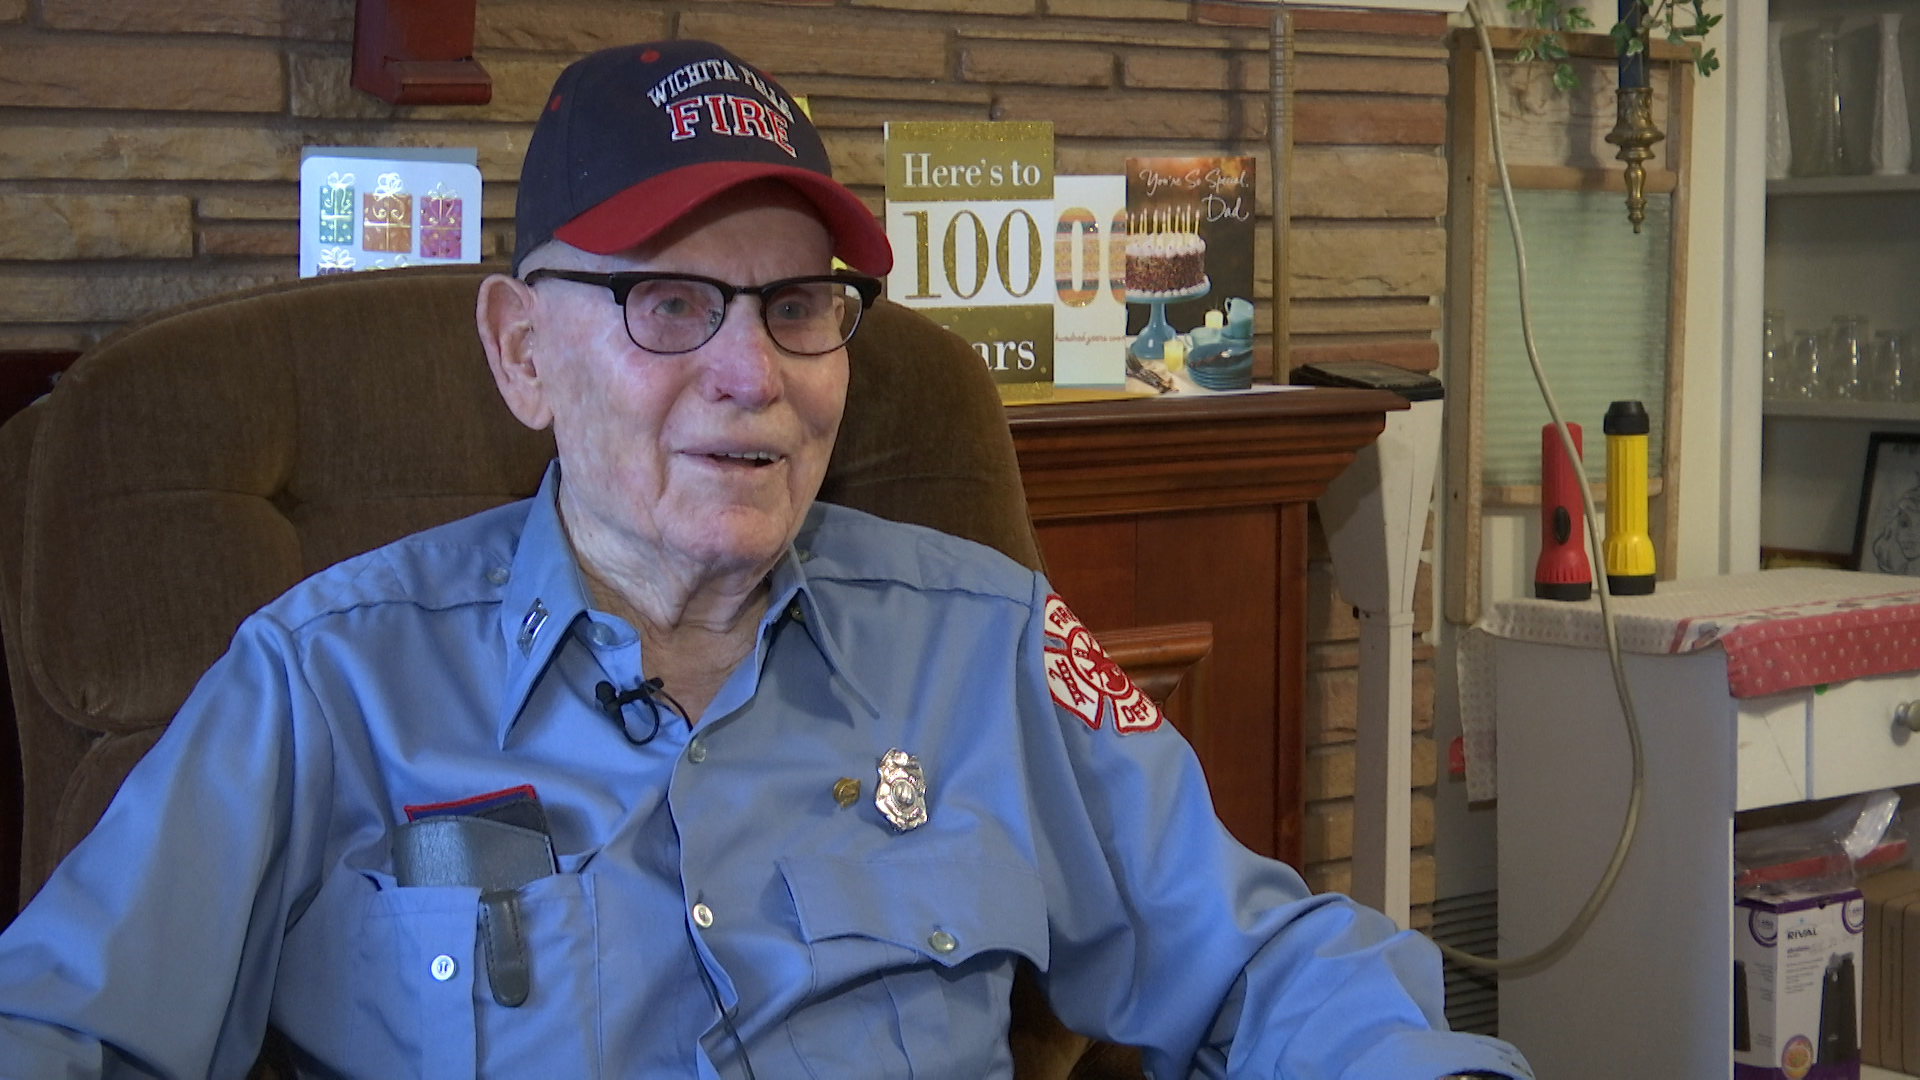 One Wichita Falls veteran is looking on the bright side as he celebrates a major milestone.